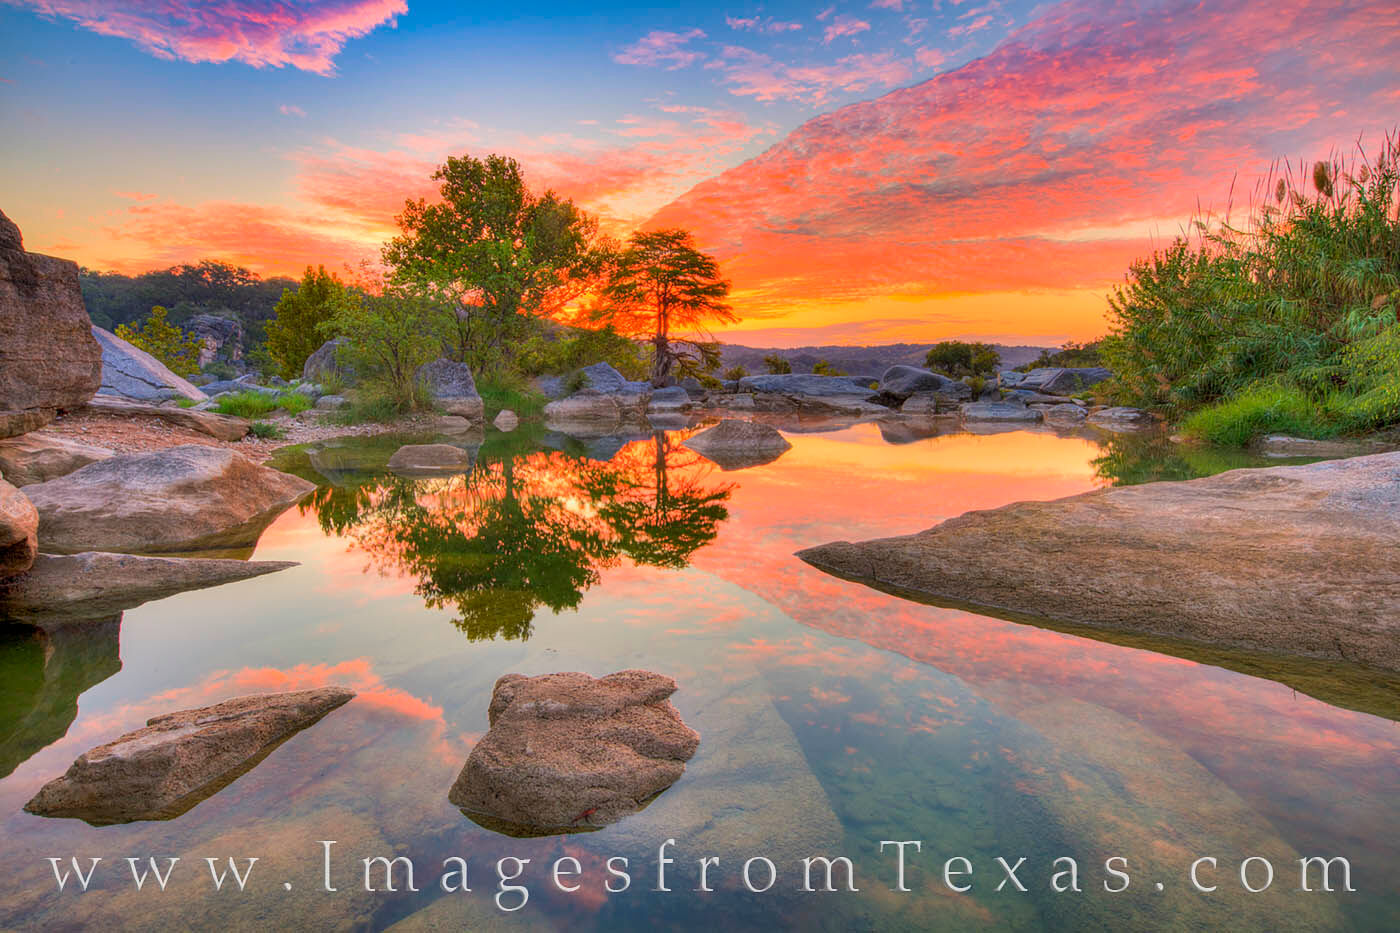 texas hill country, hill country, pedernales falls, pedernales river, pedernales, sunrise, texas sunrise, september, october, texas landscapes, water, photo